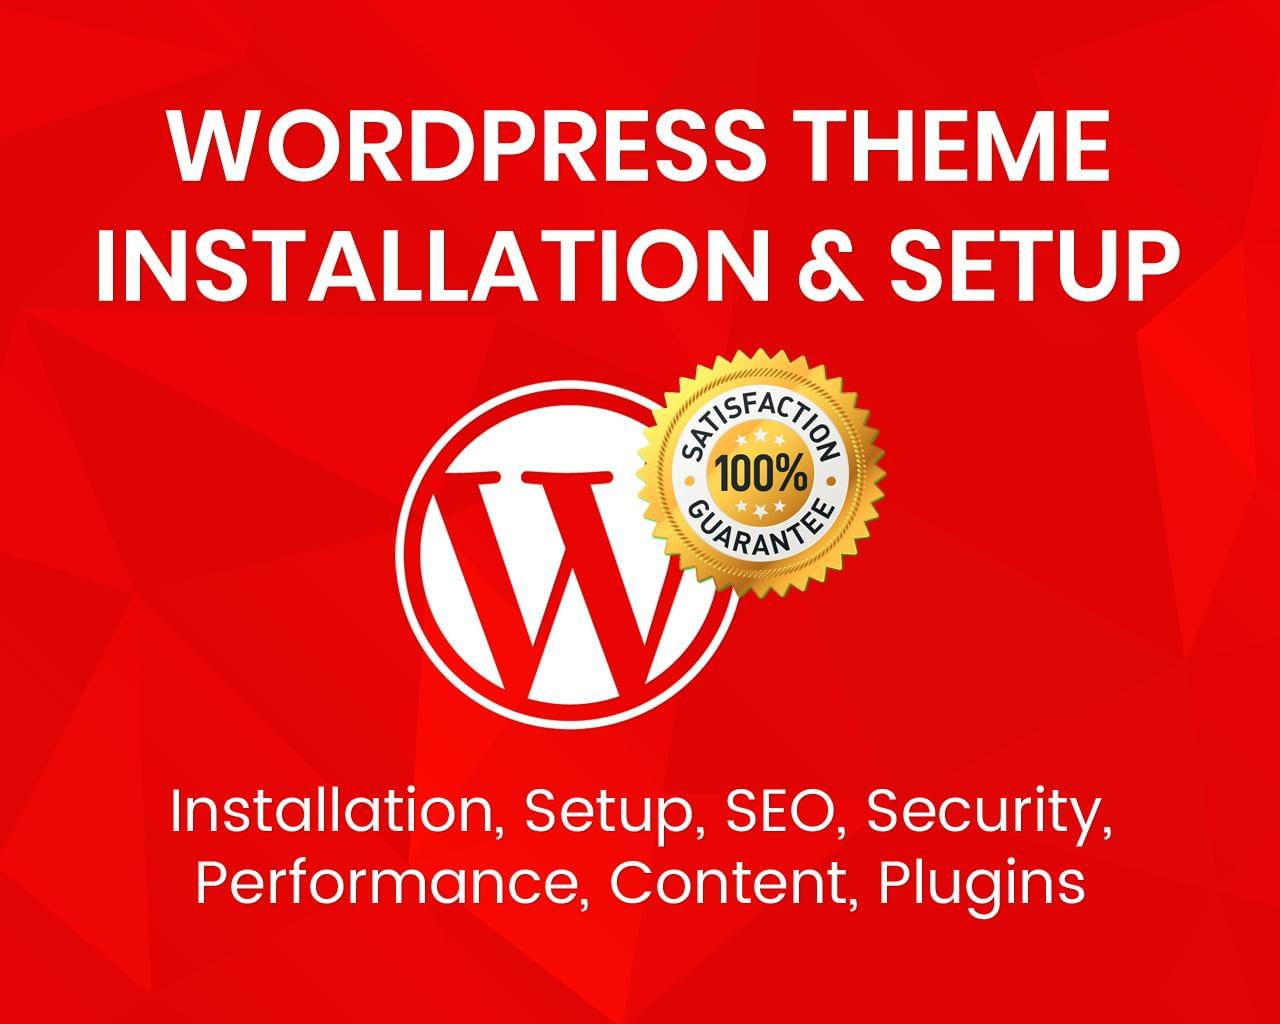 WordPress Installation & Theme Setup (SEO, Security, Performance, Content, Plugins) by uipro - 113368